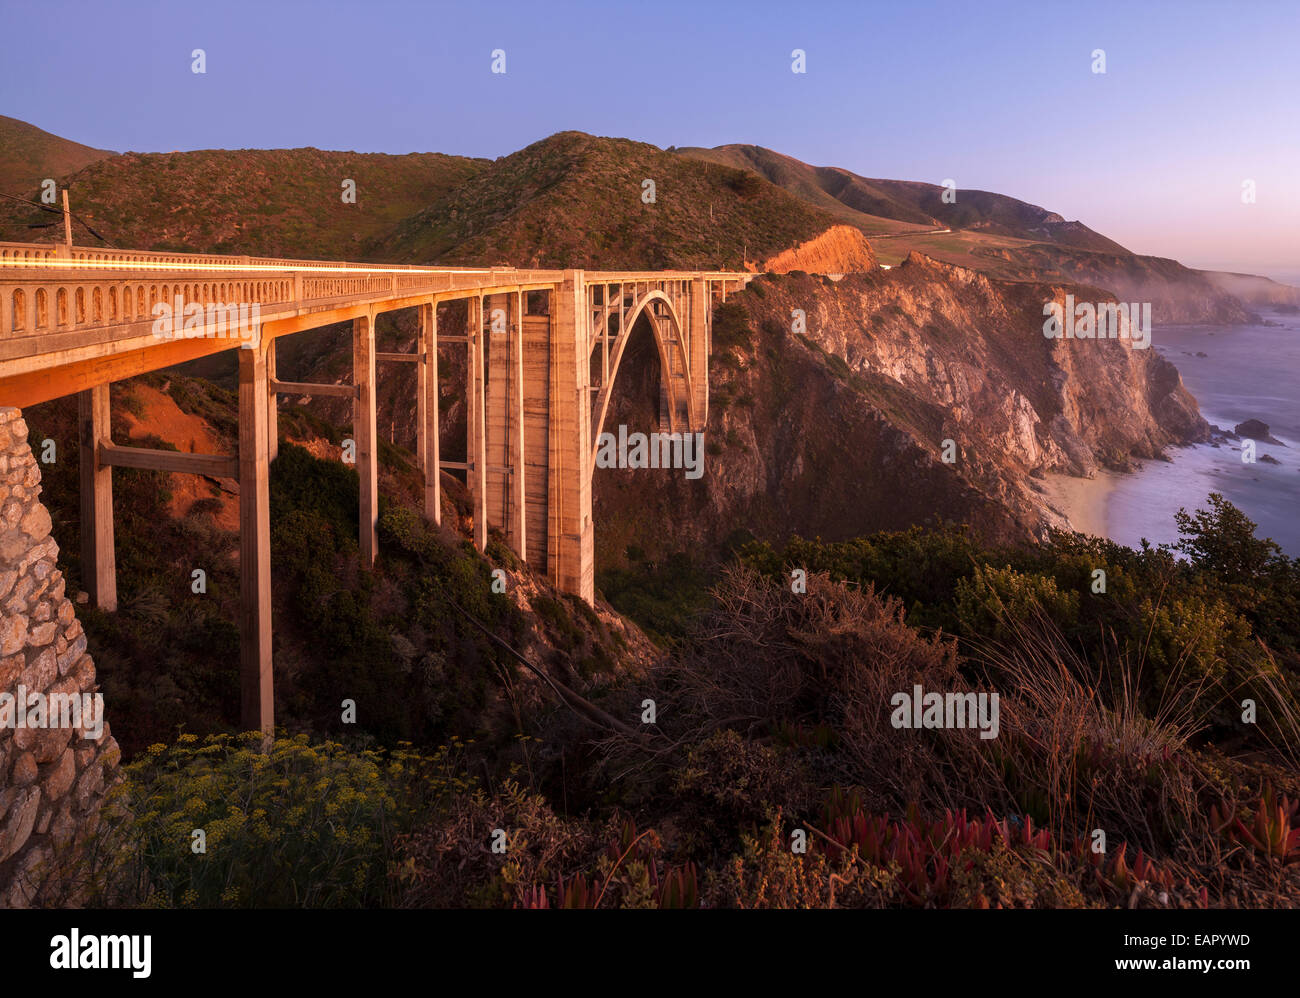 Bixby Bridge Pacific Coast Highway Big Sur en Californie. Bixby Creek Canyon Bridge avec traces légères Photo Stock